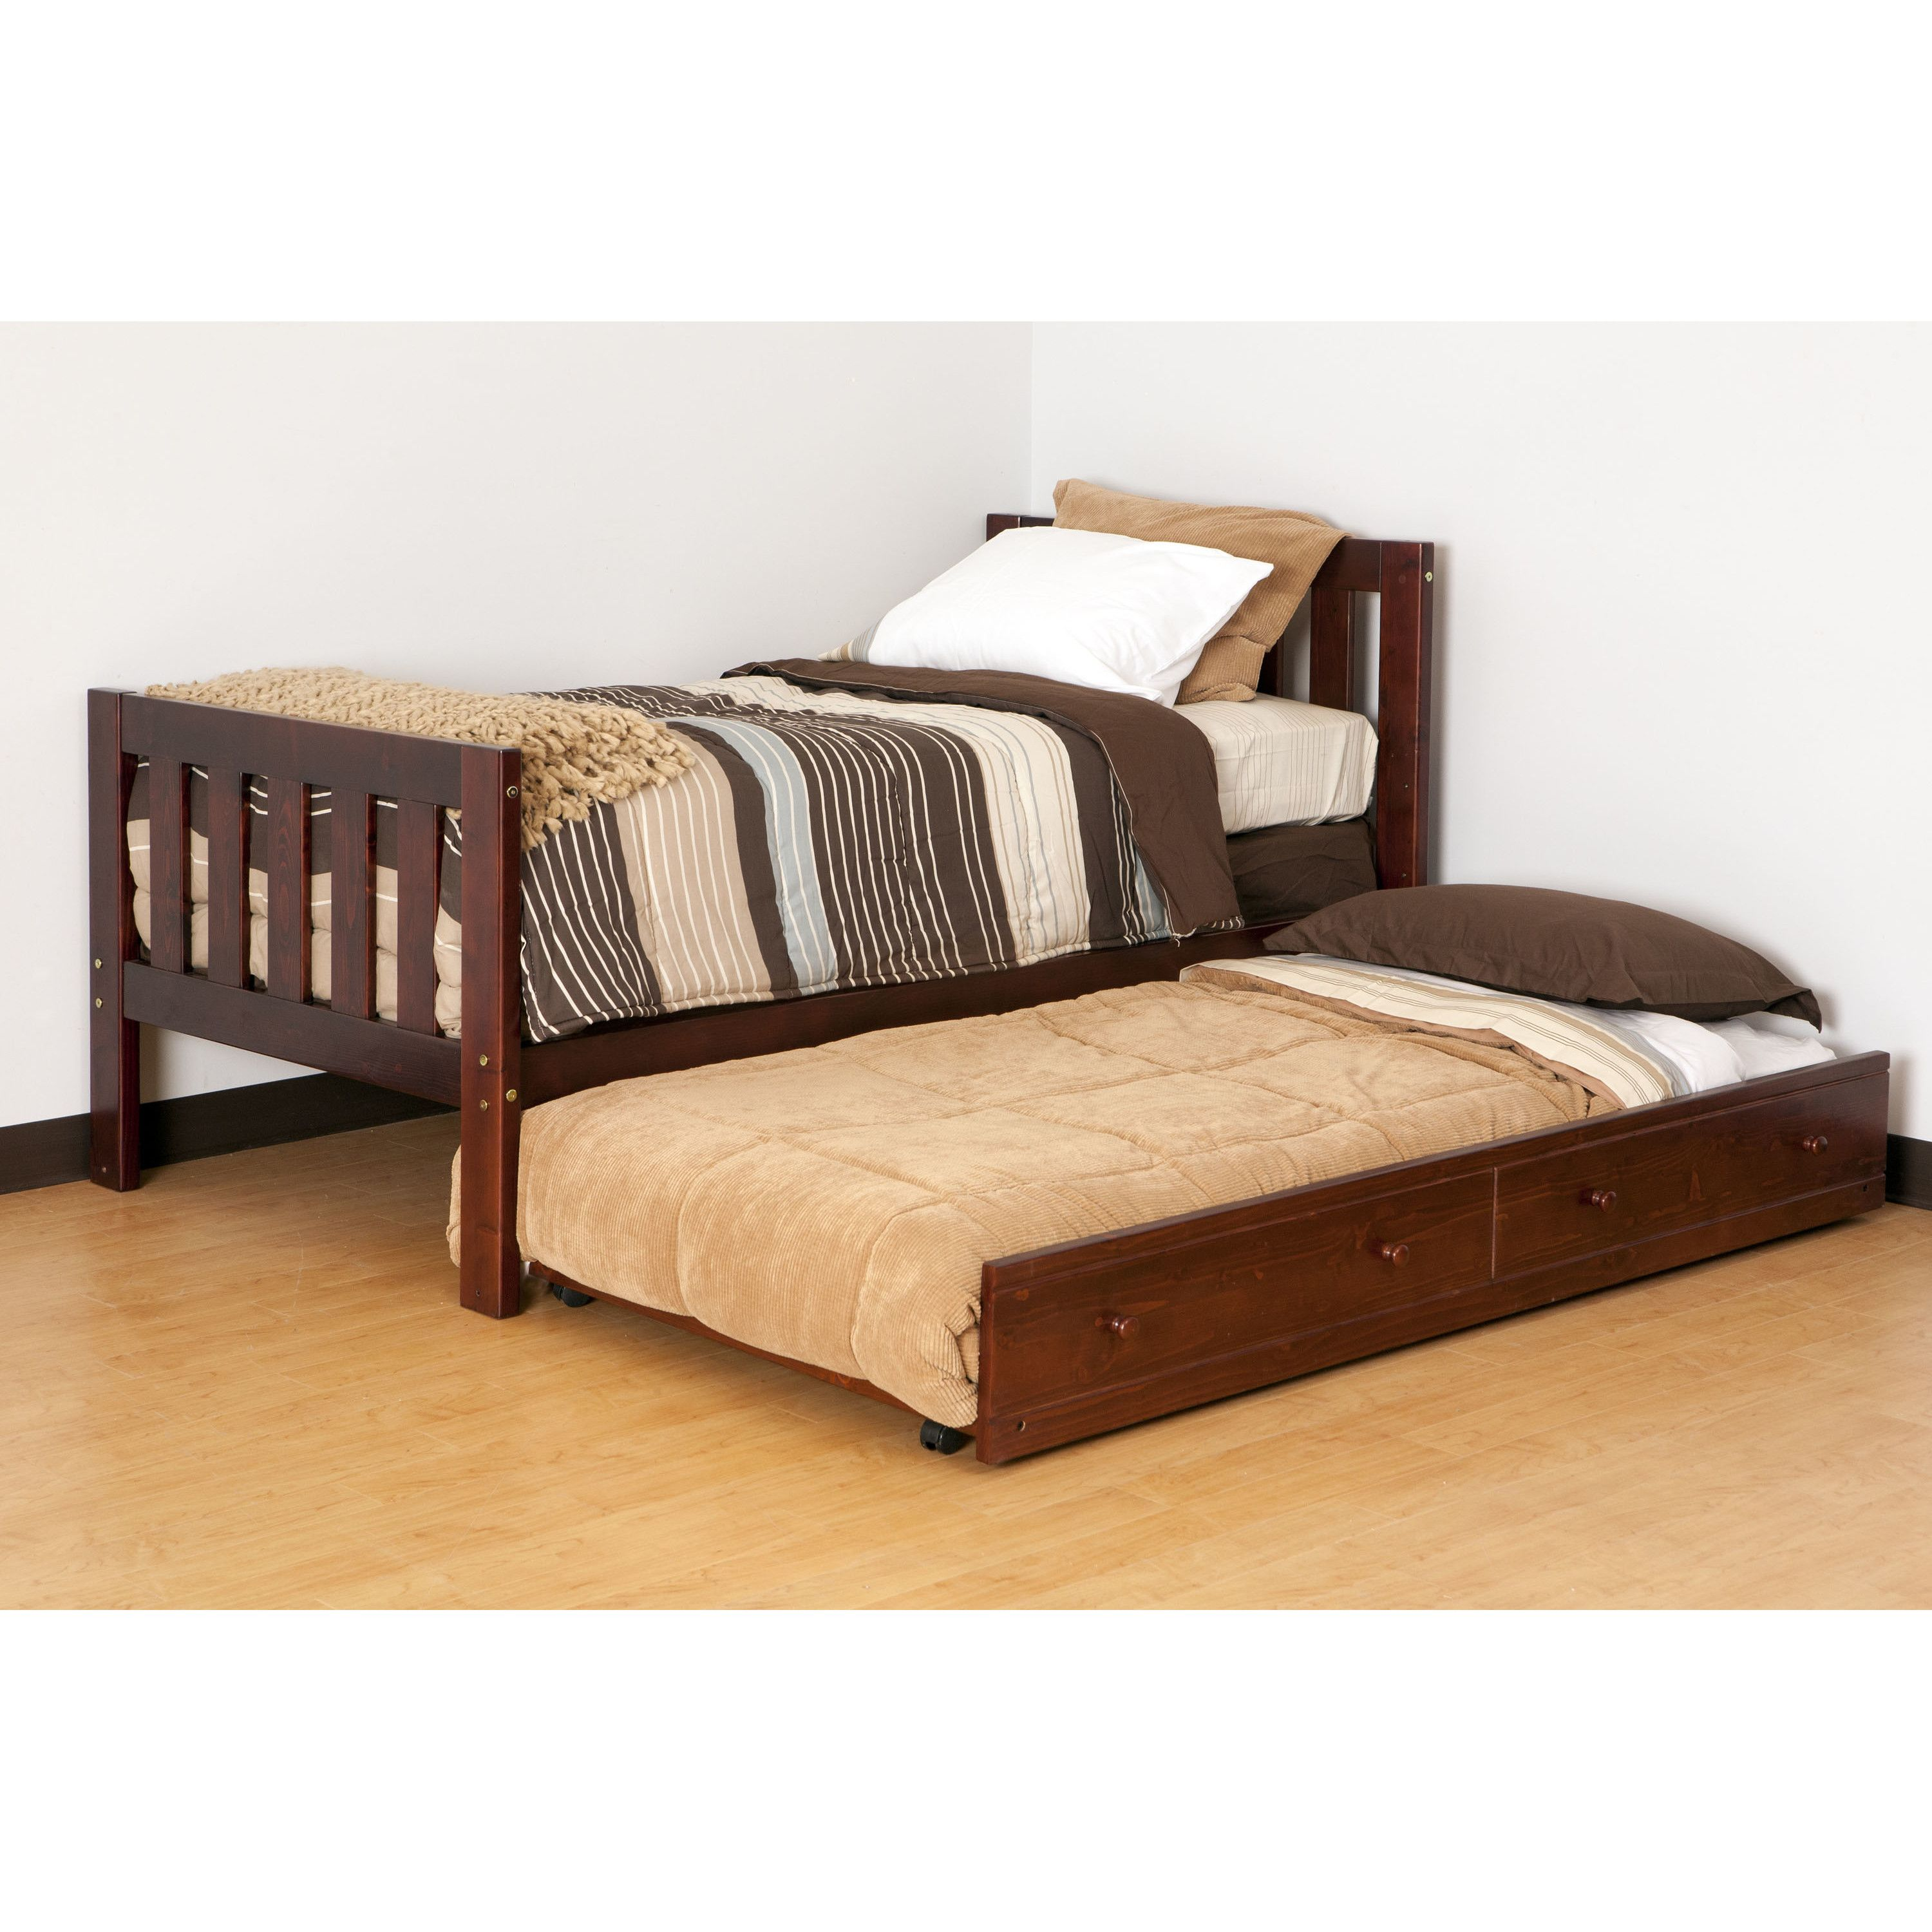 Canwood Furniture Alpine II Slat Bed Kid beds, Country